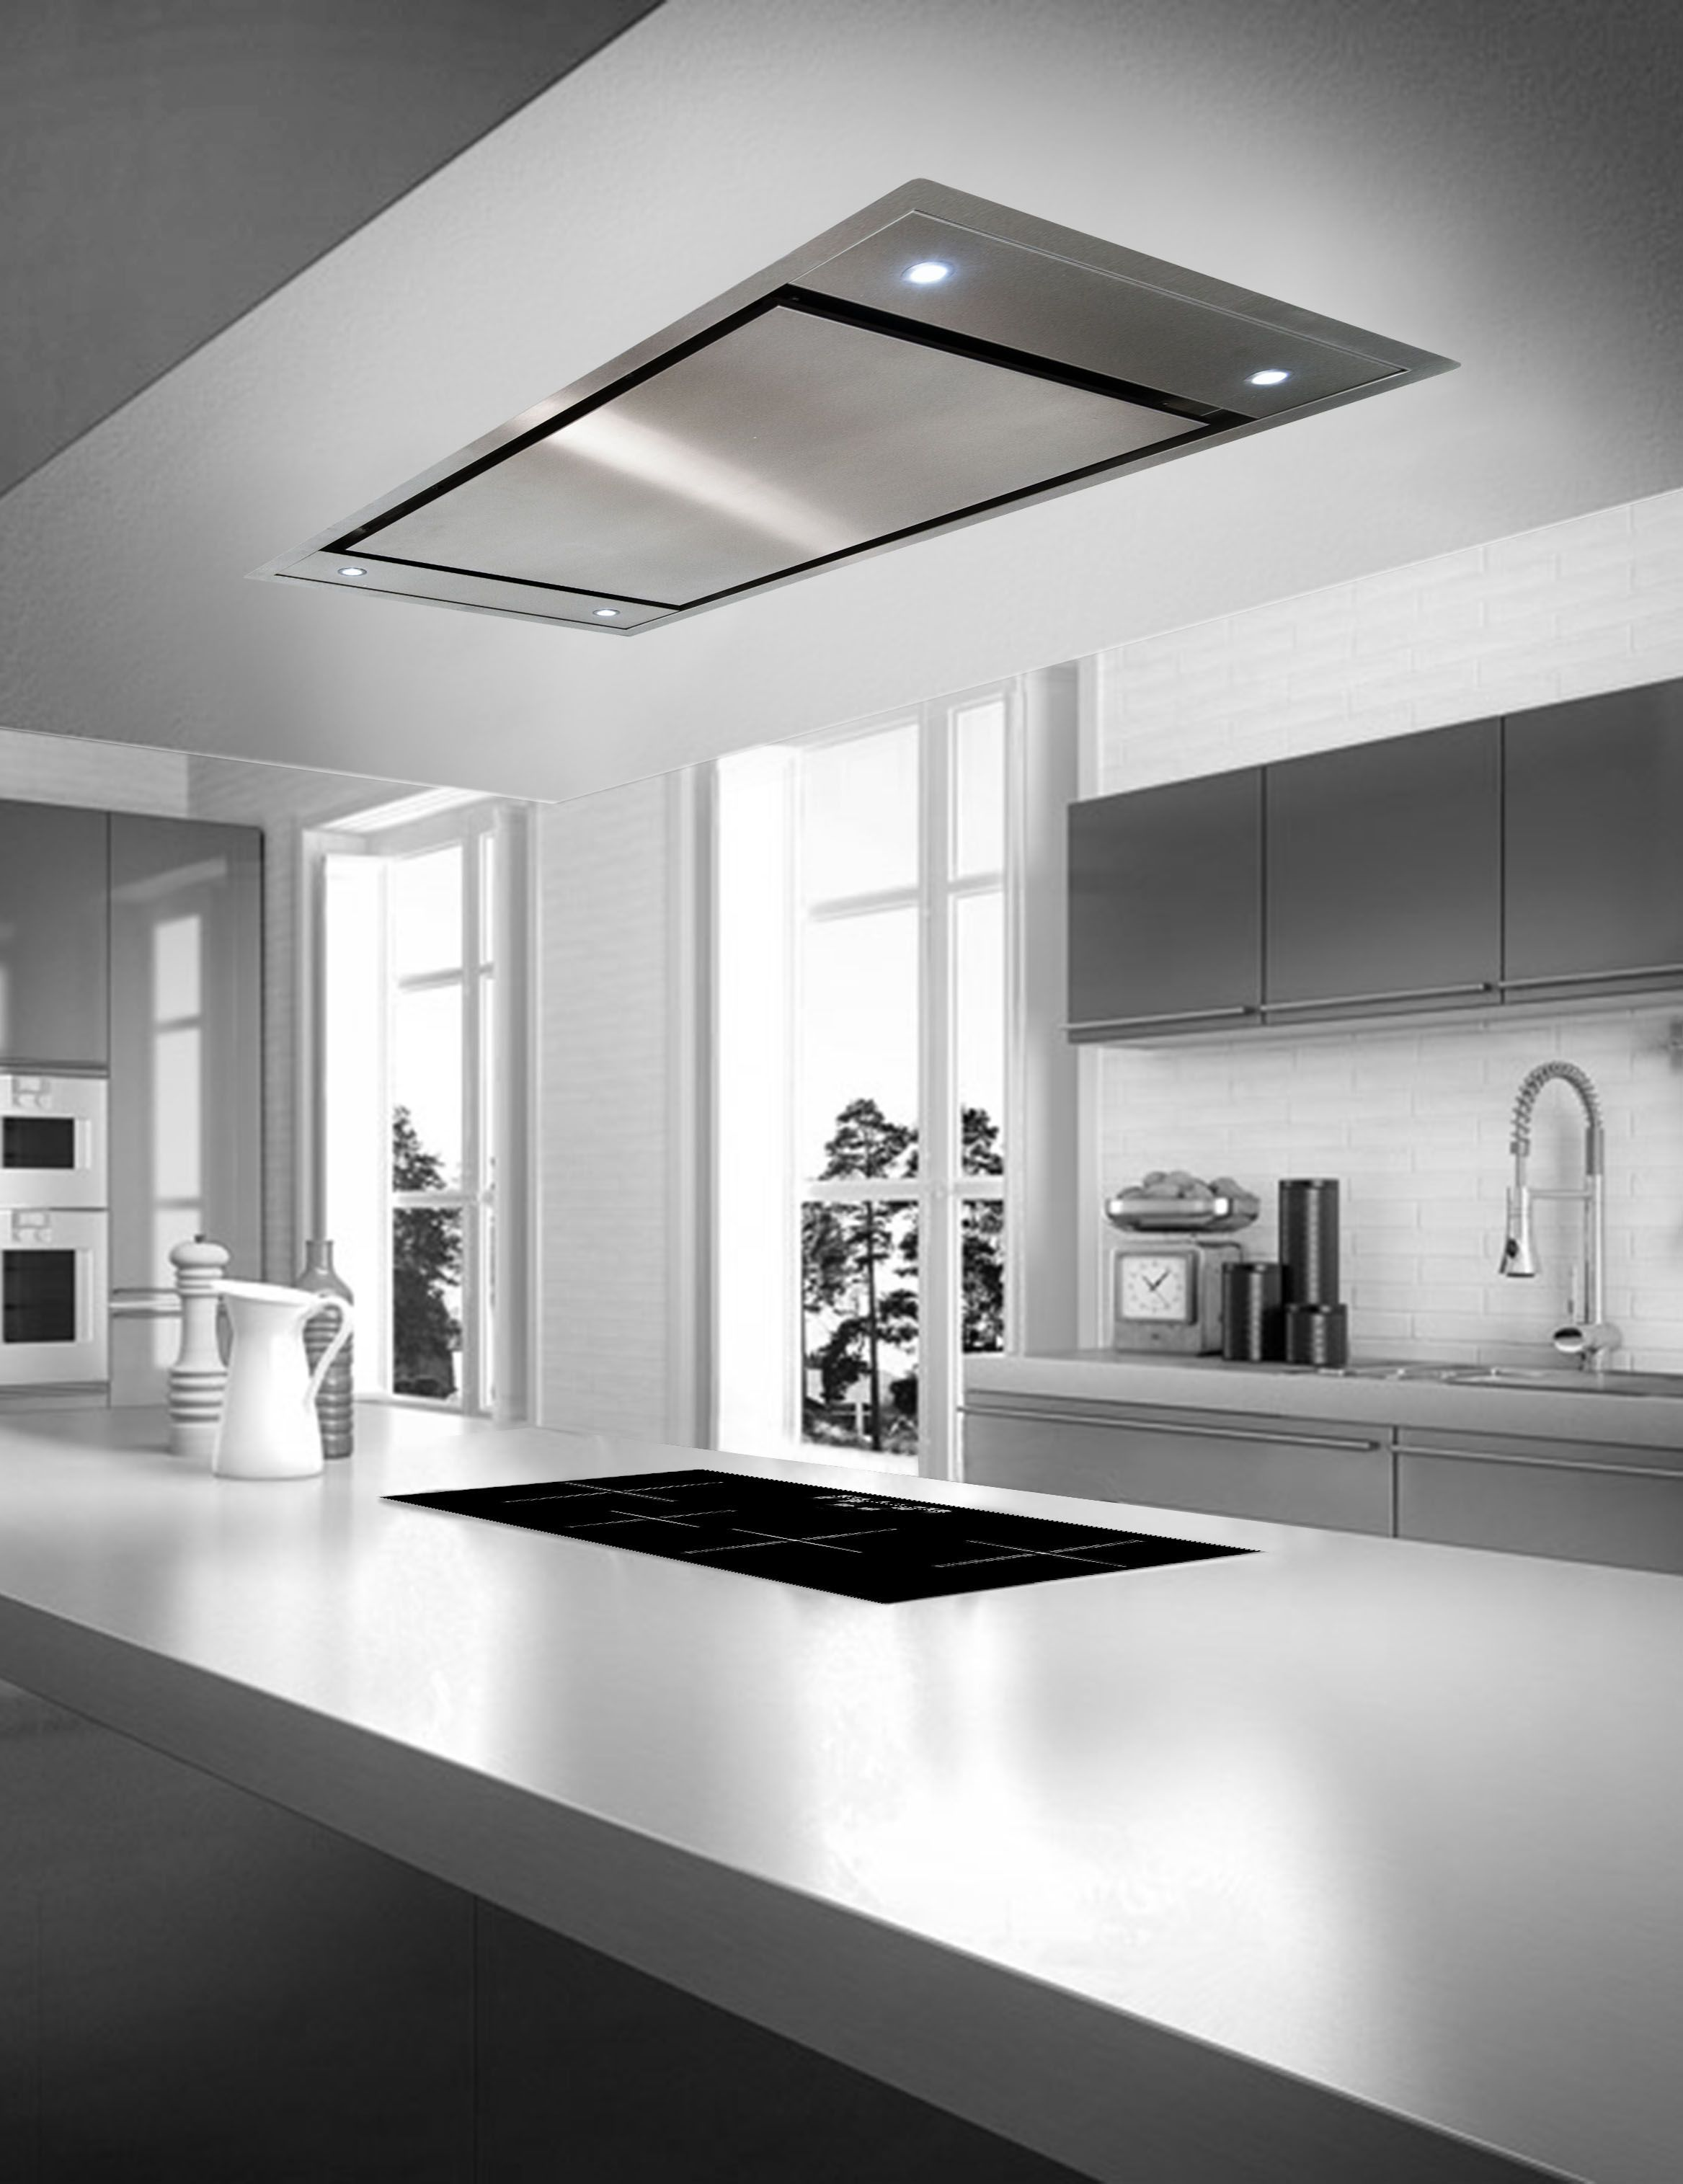 zefiro ce120 flush mount island ceiling hoods. Black Bedroom Furniture Sets. Home Design Ideas